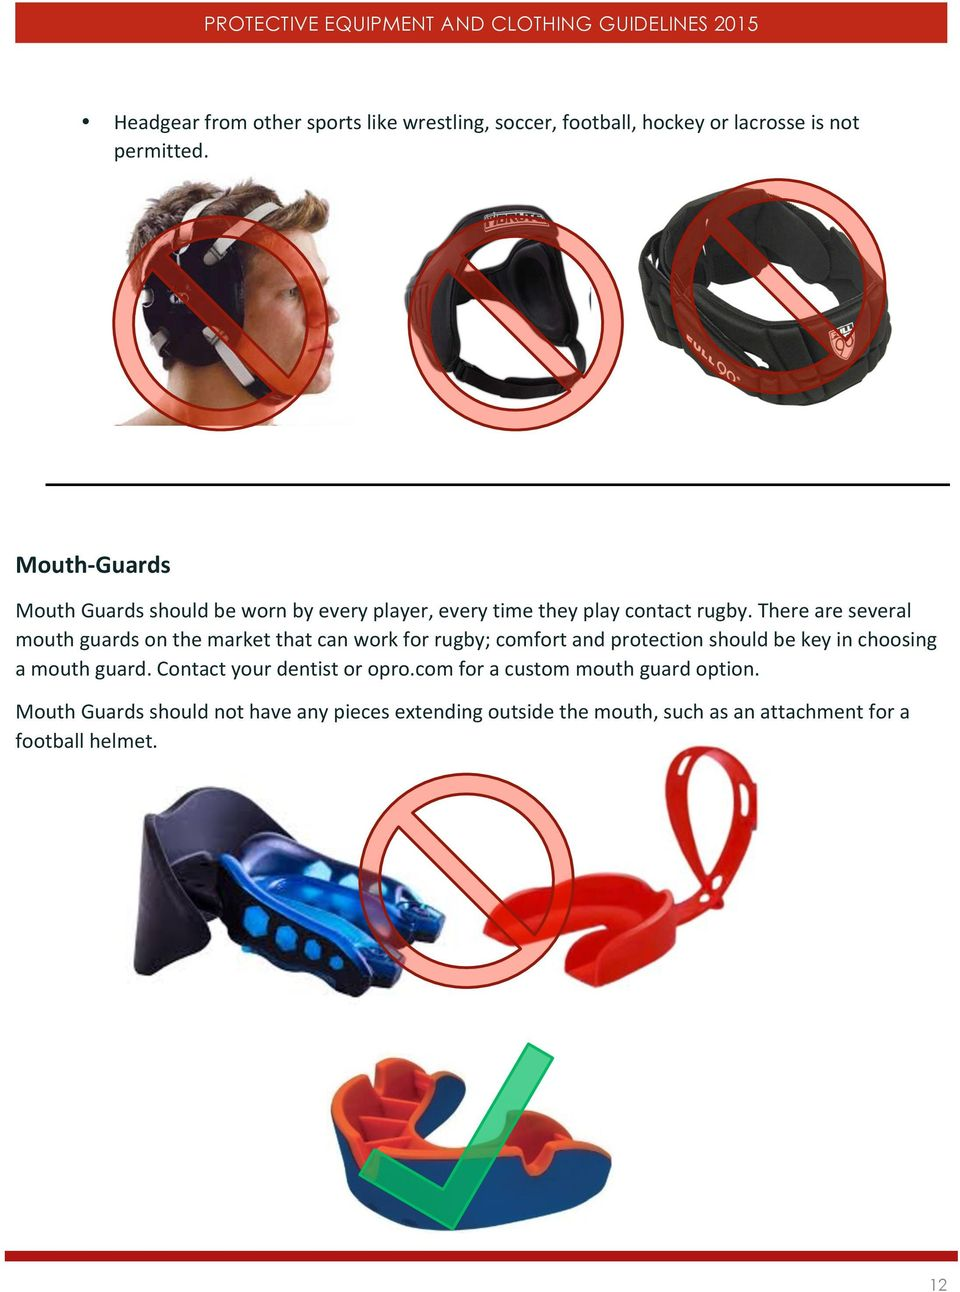 There are several mouth guards on the market that can work for rugby; comfort and protection should be key in choosing a mouth